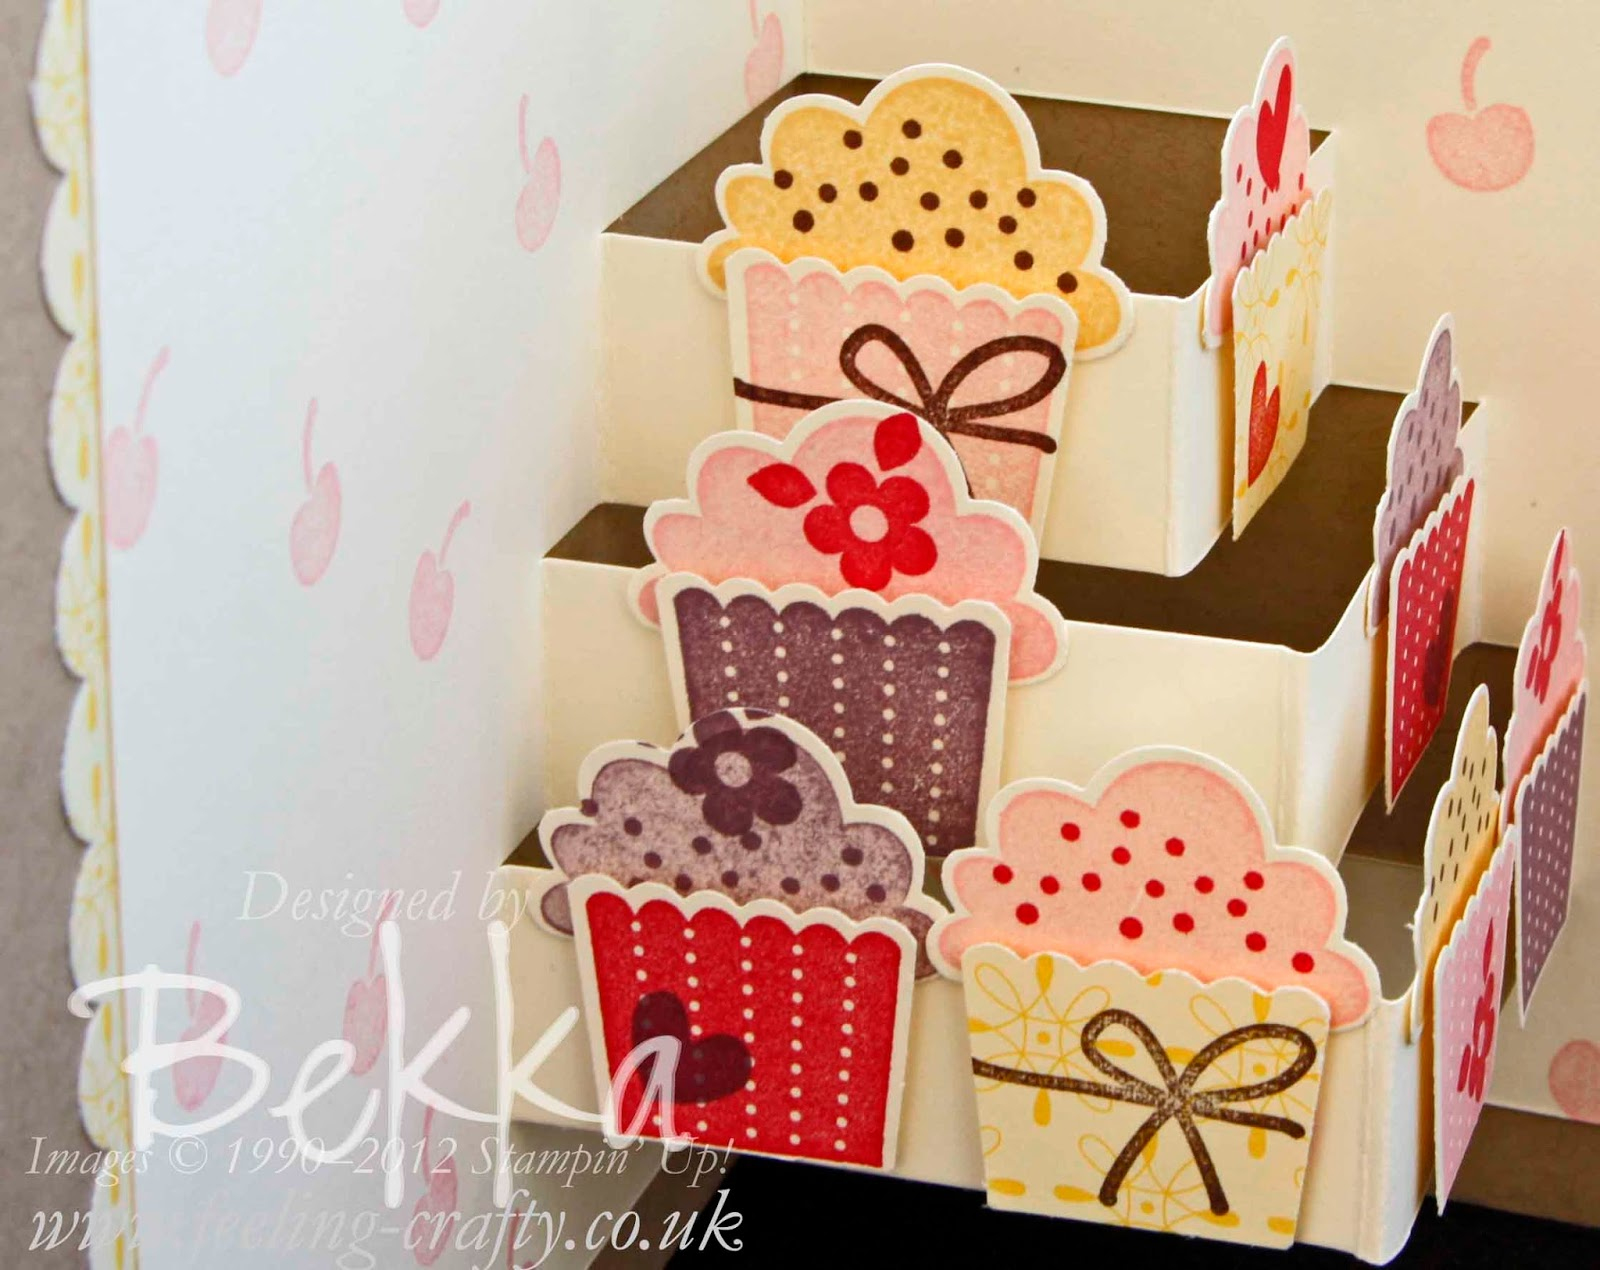 Create a Cupcake card by Stampin' Up! UK Independent Demonstrator Bekka - check out her classes - they look great!